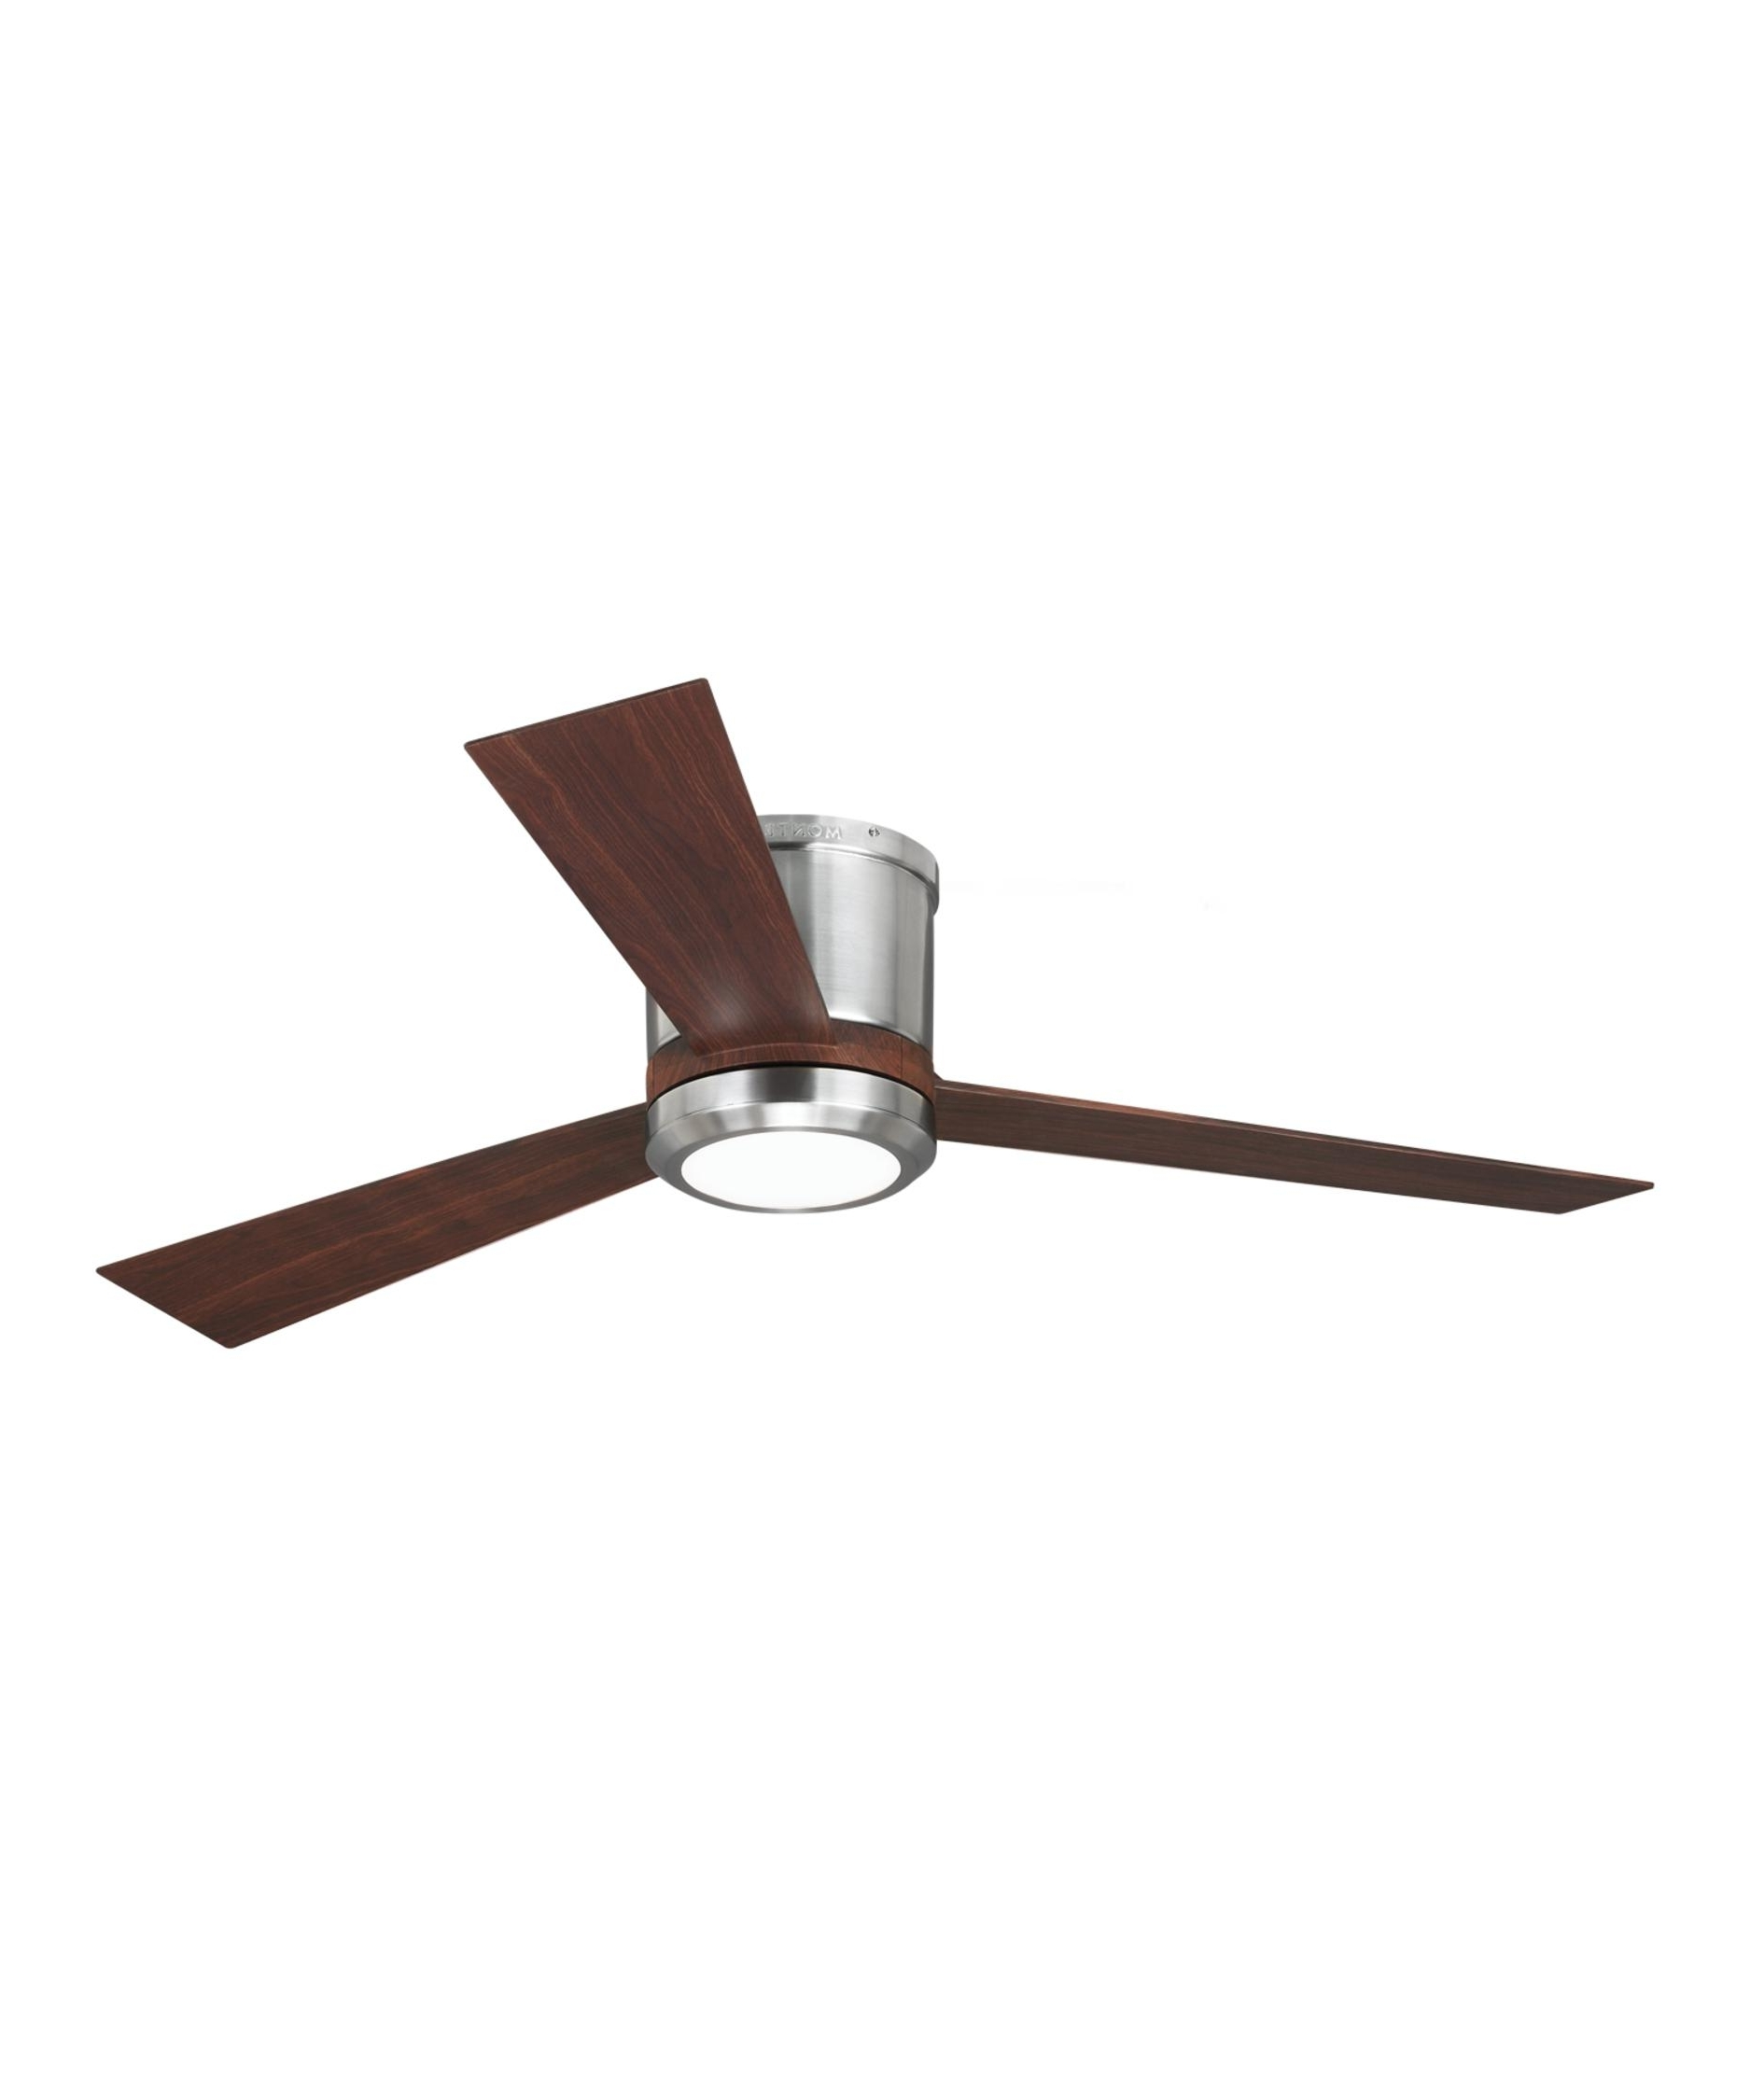 Fashionable 36 Inch Outdoor Ceiling Fans With Light Flush Mount Intended For 36 Inch Ceiling Fan With Light Flush Mount – Tariqalhanaee (View 4 of 20)